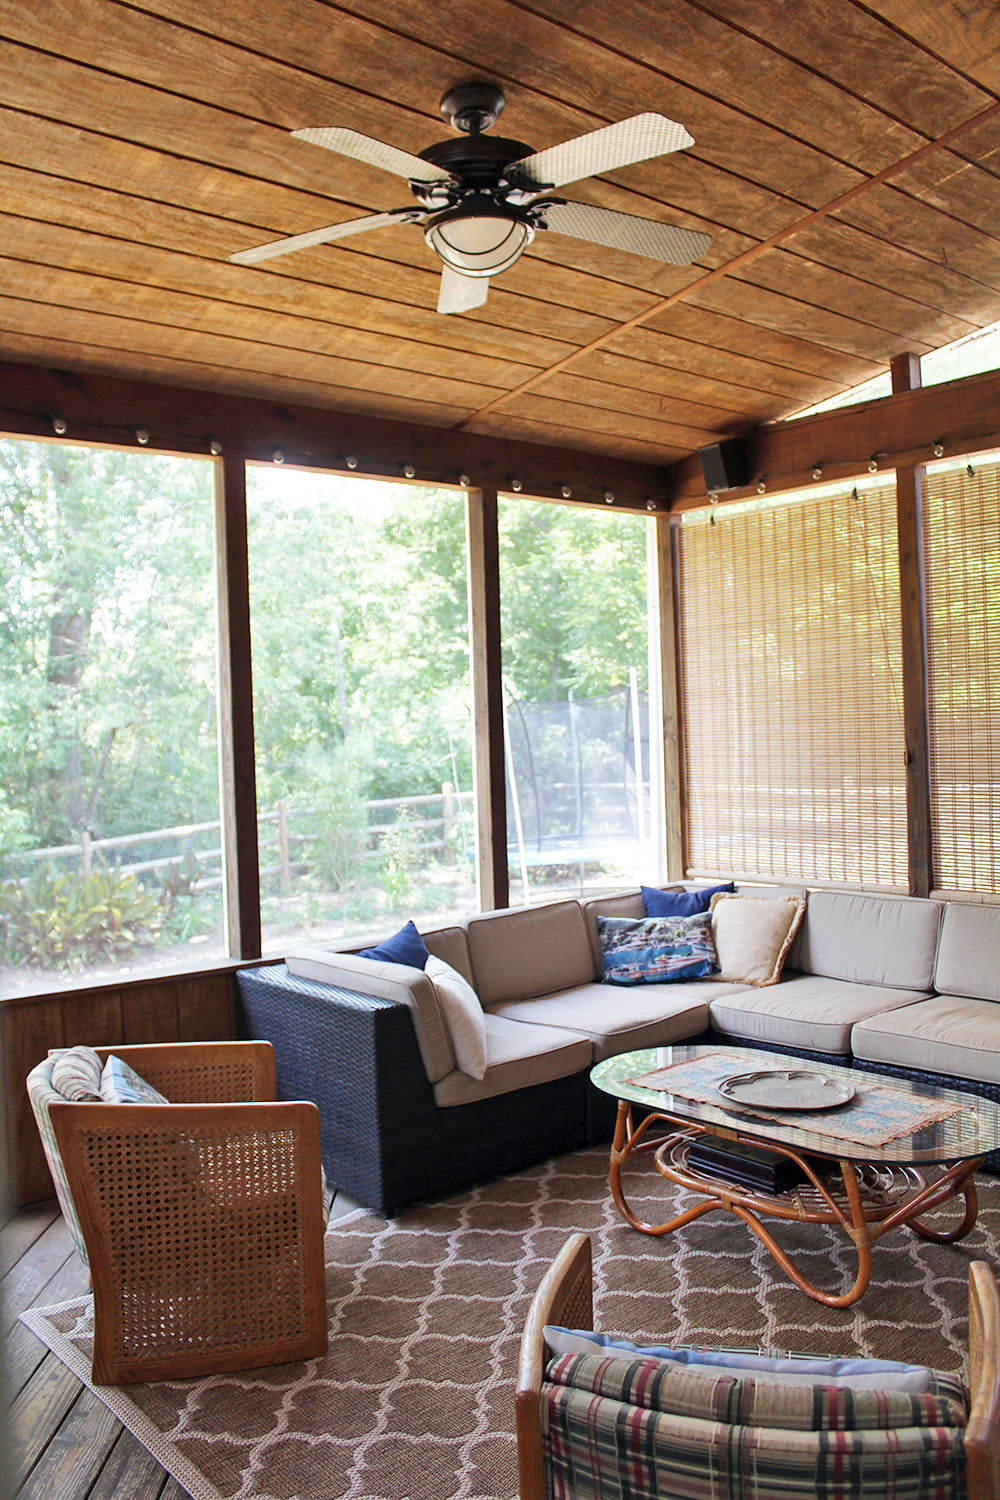 10 Screened In Porch Ideas — Tag & Tibby Design on Closed Patio Design id=75442